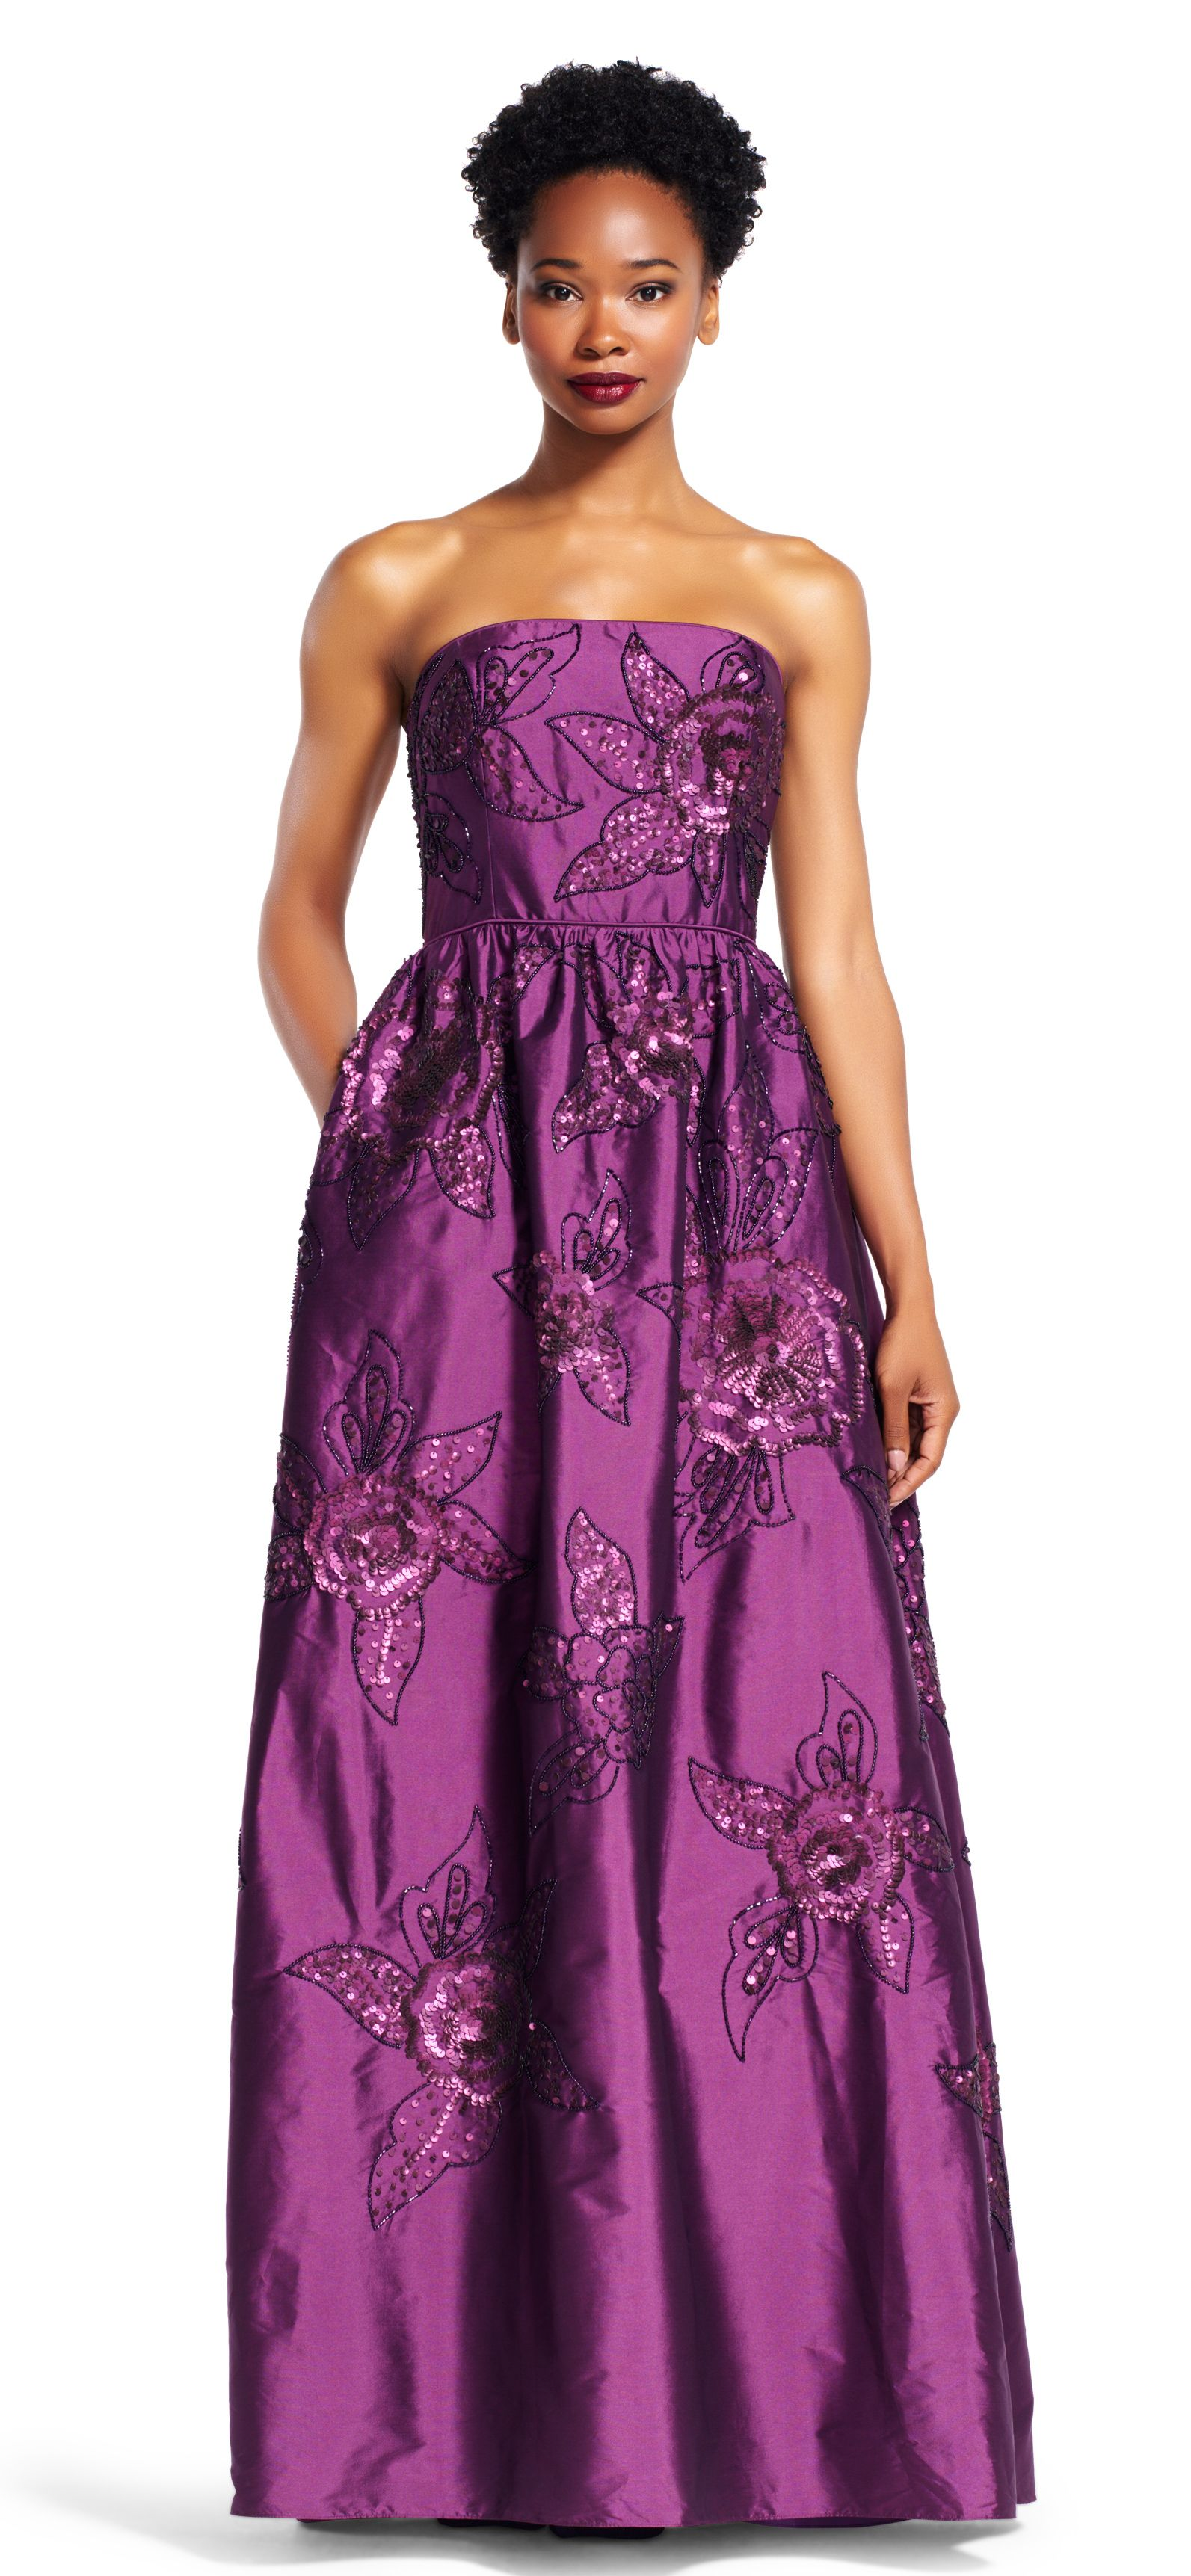 Strapless Silky Taffeta Ball Gown with Floral Beading   Glamorous ...